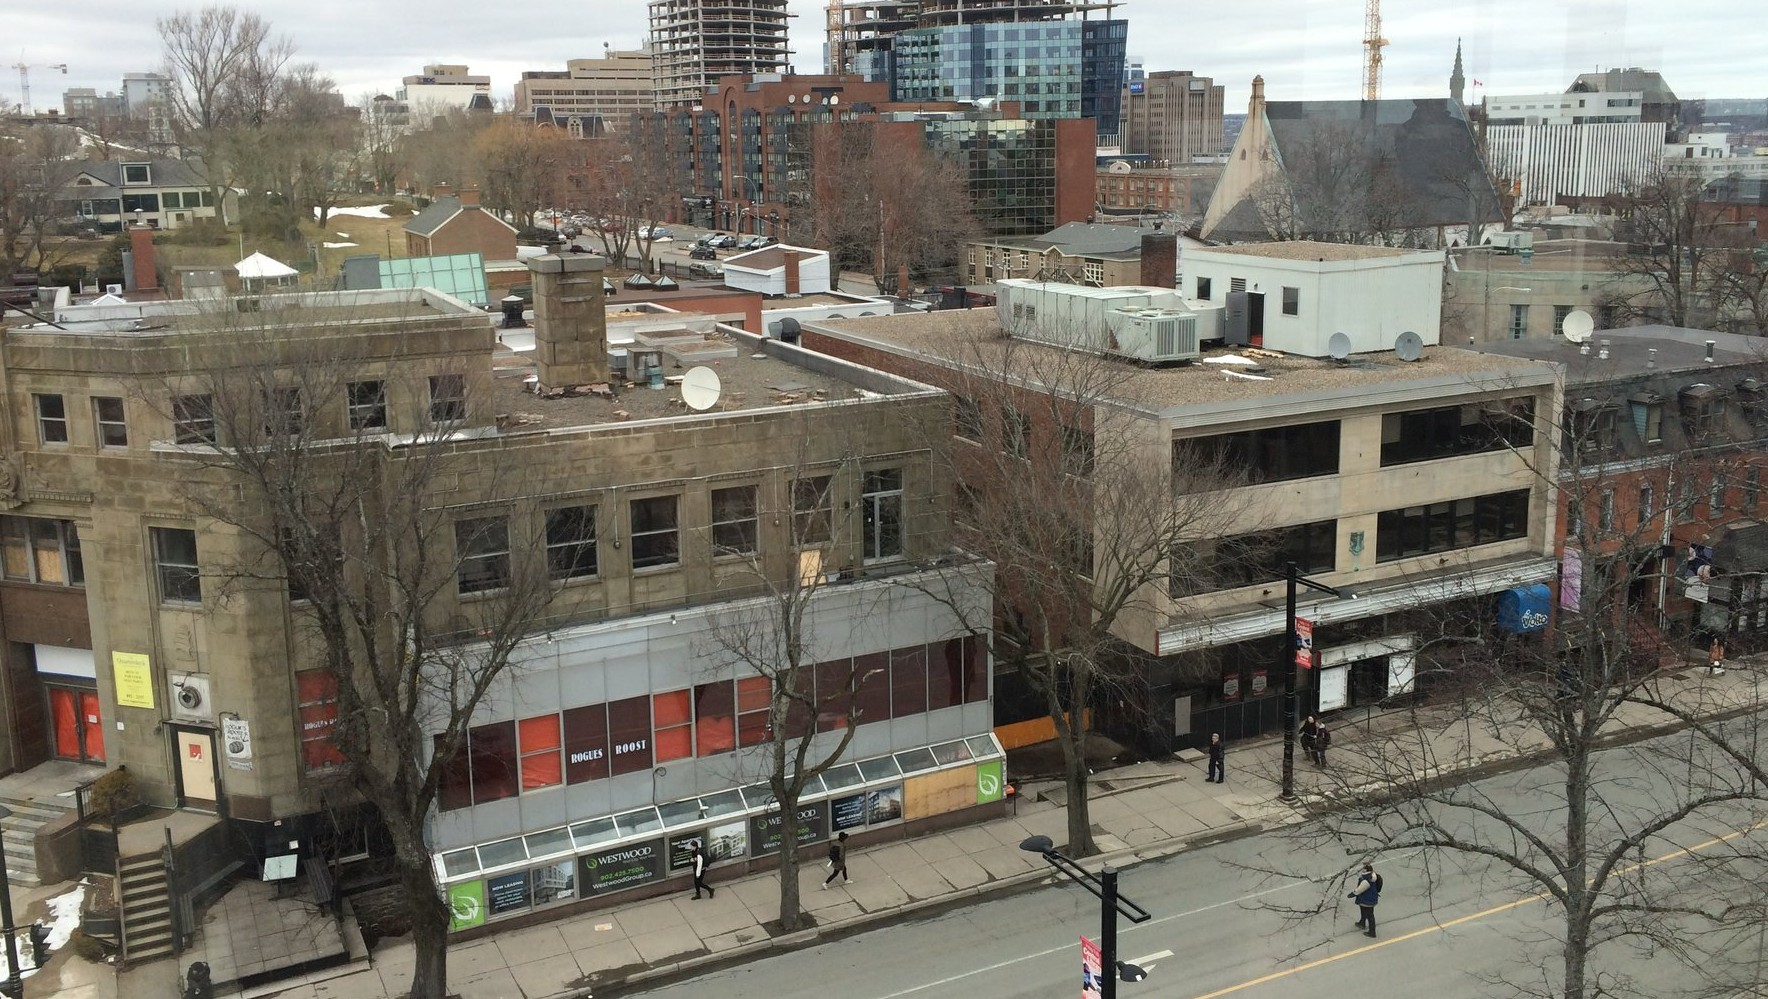 The block, pictured here with a birds-eye-view, will be demolished next week.